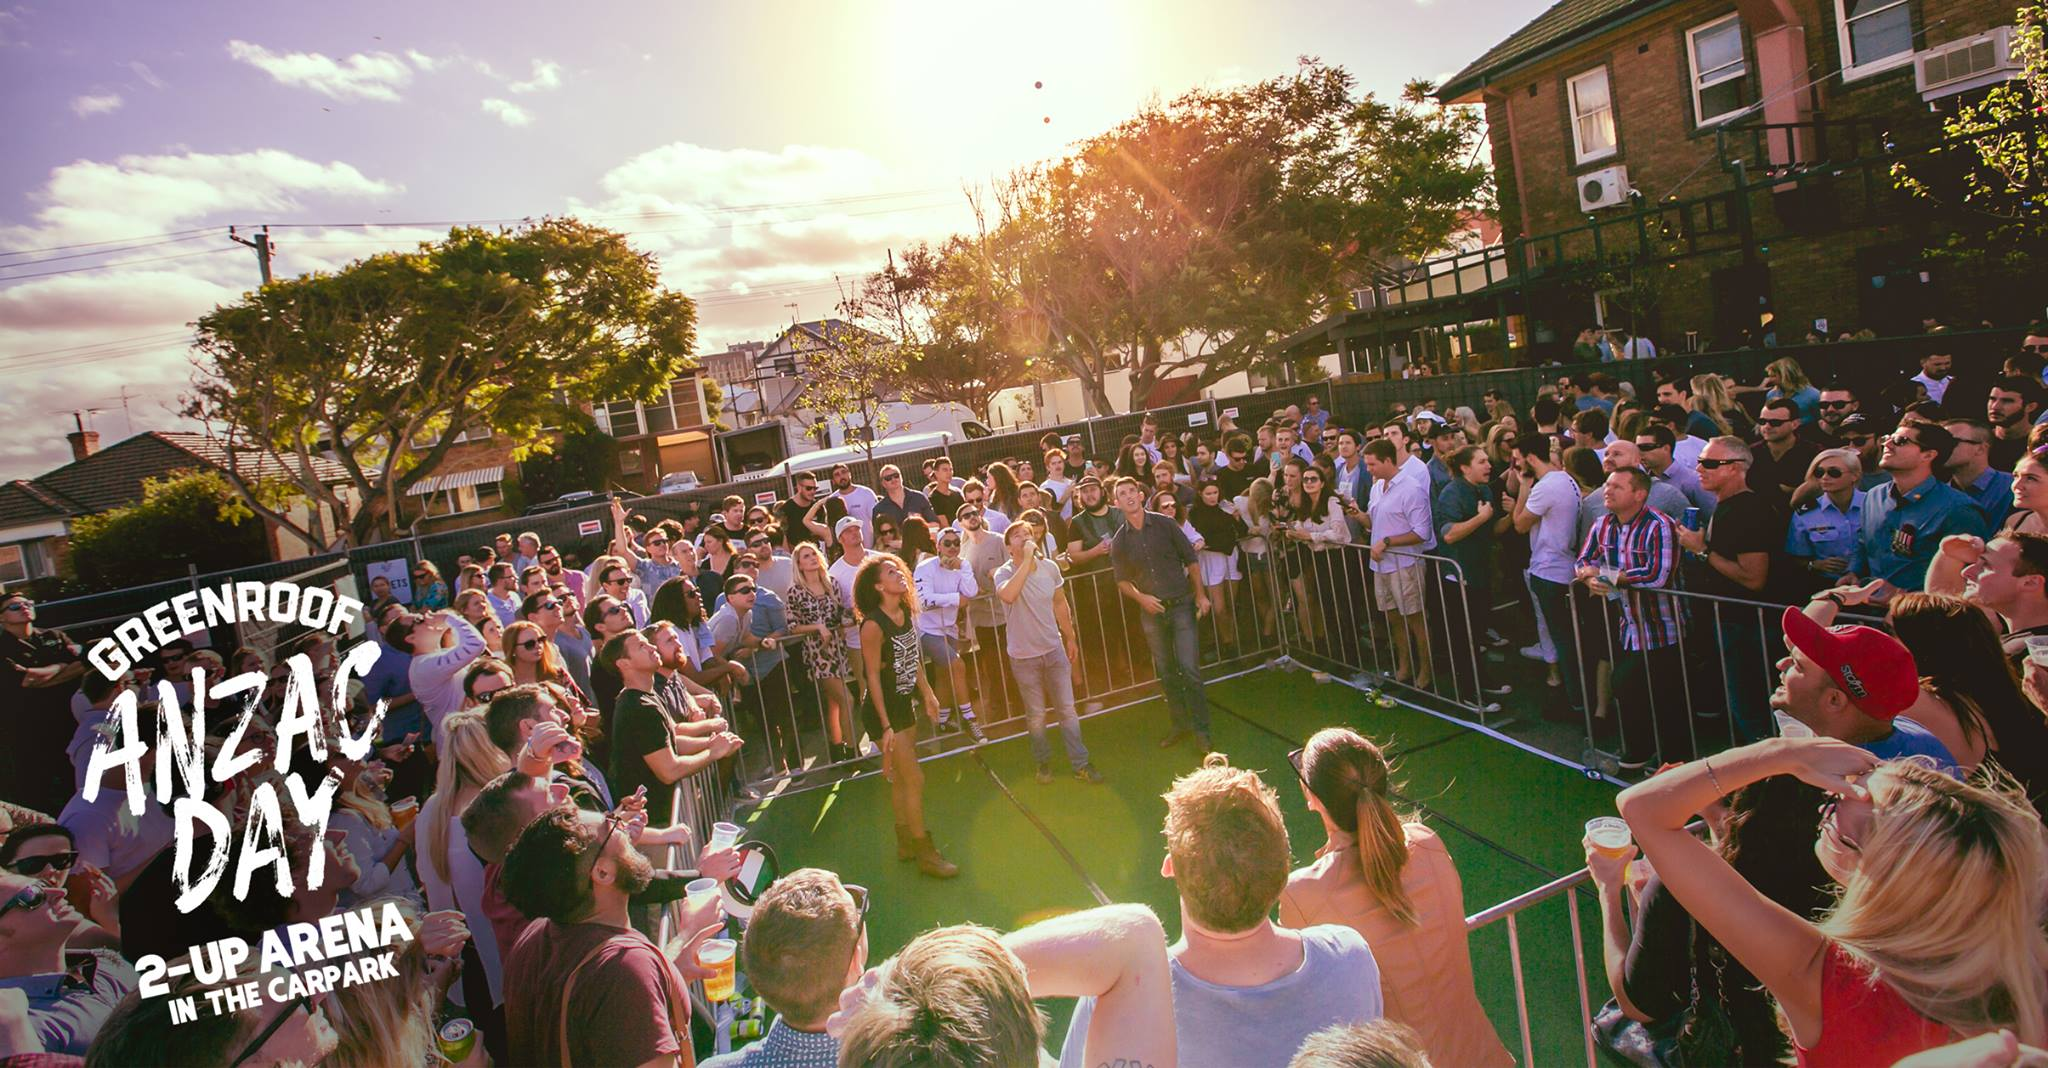 The Greenroof's ANZAC DAY